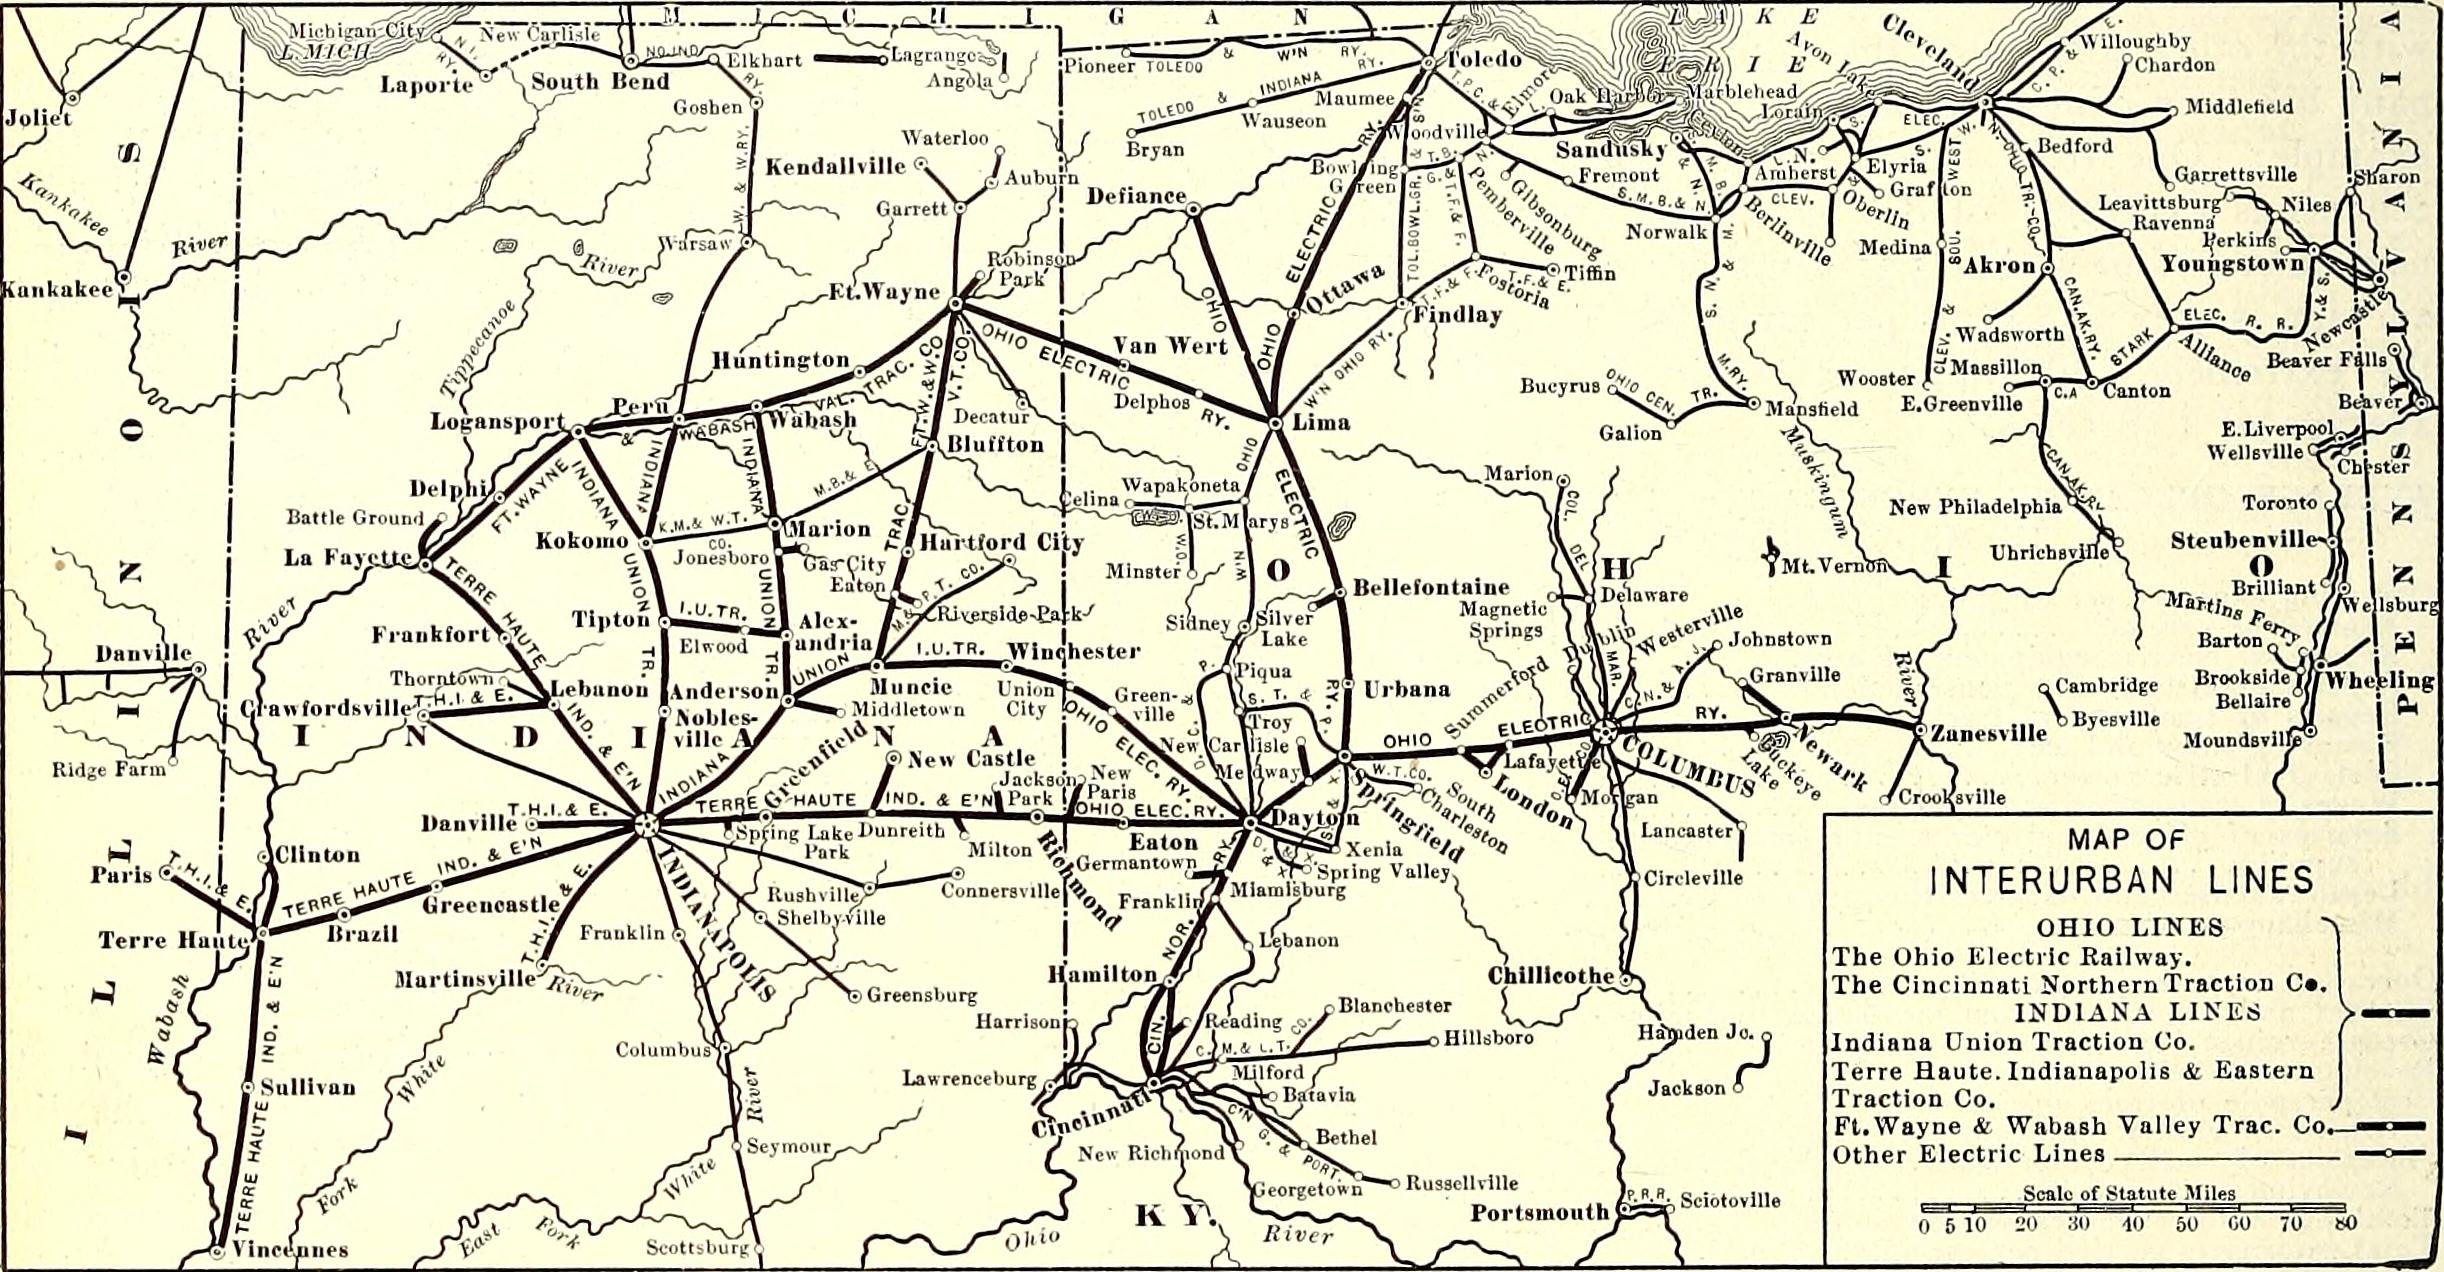 FileOhio Electric Railway Map Jpg Wikimedia Commons - Map ohio